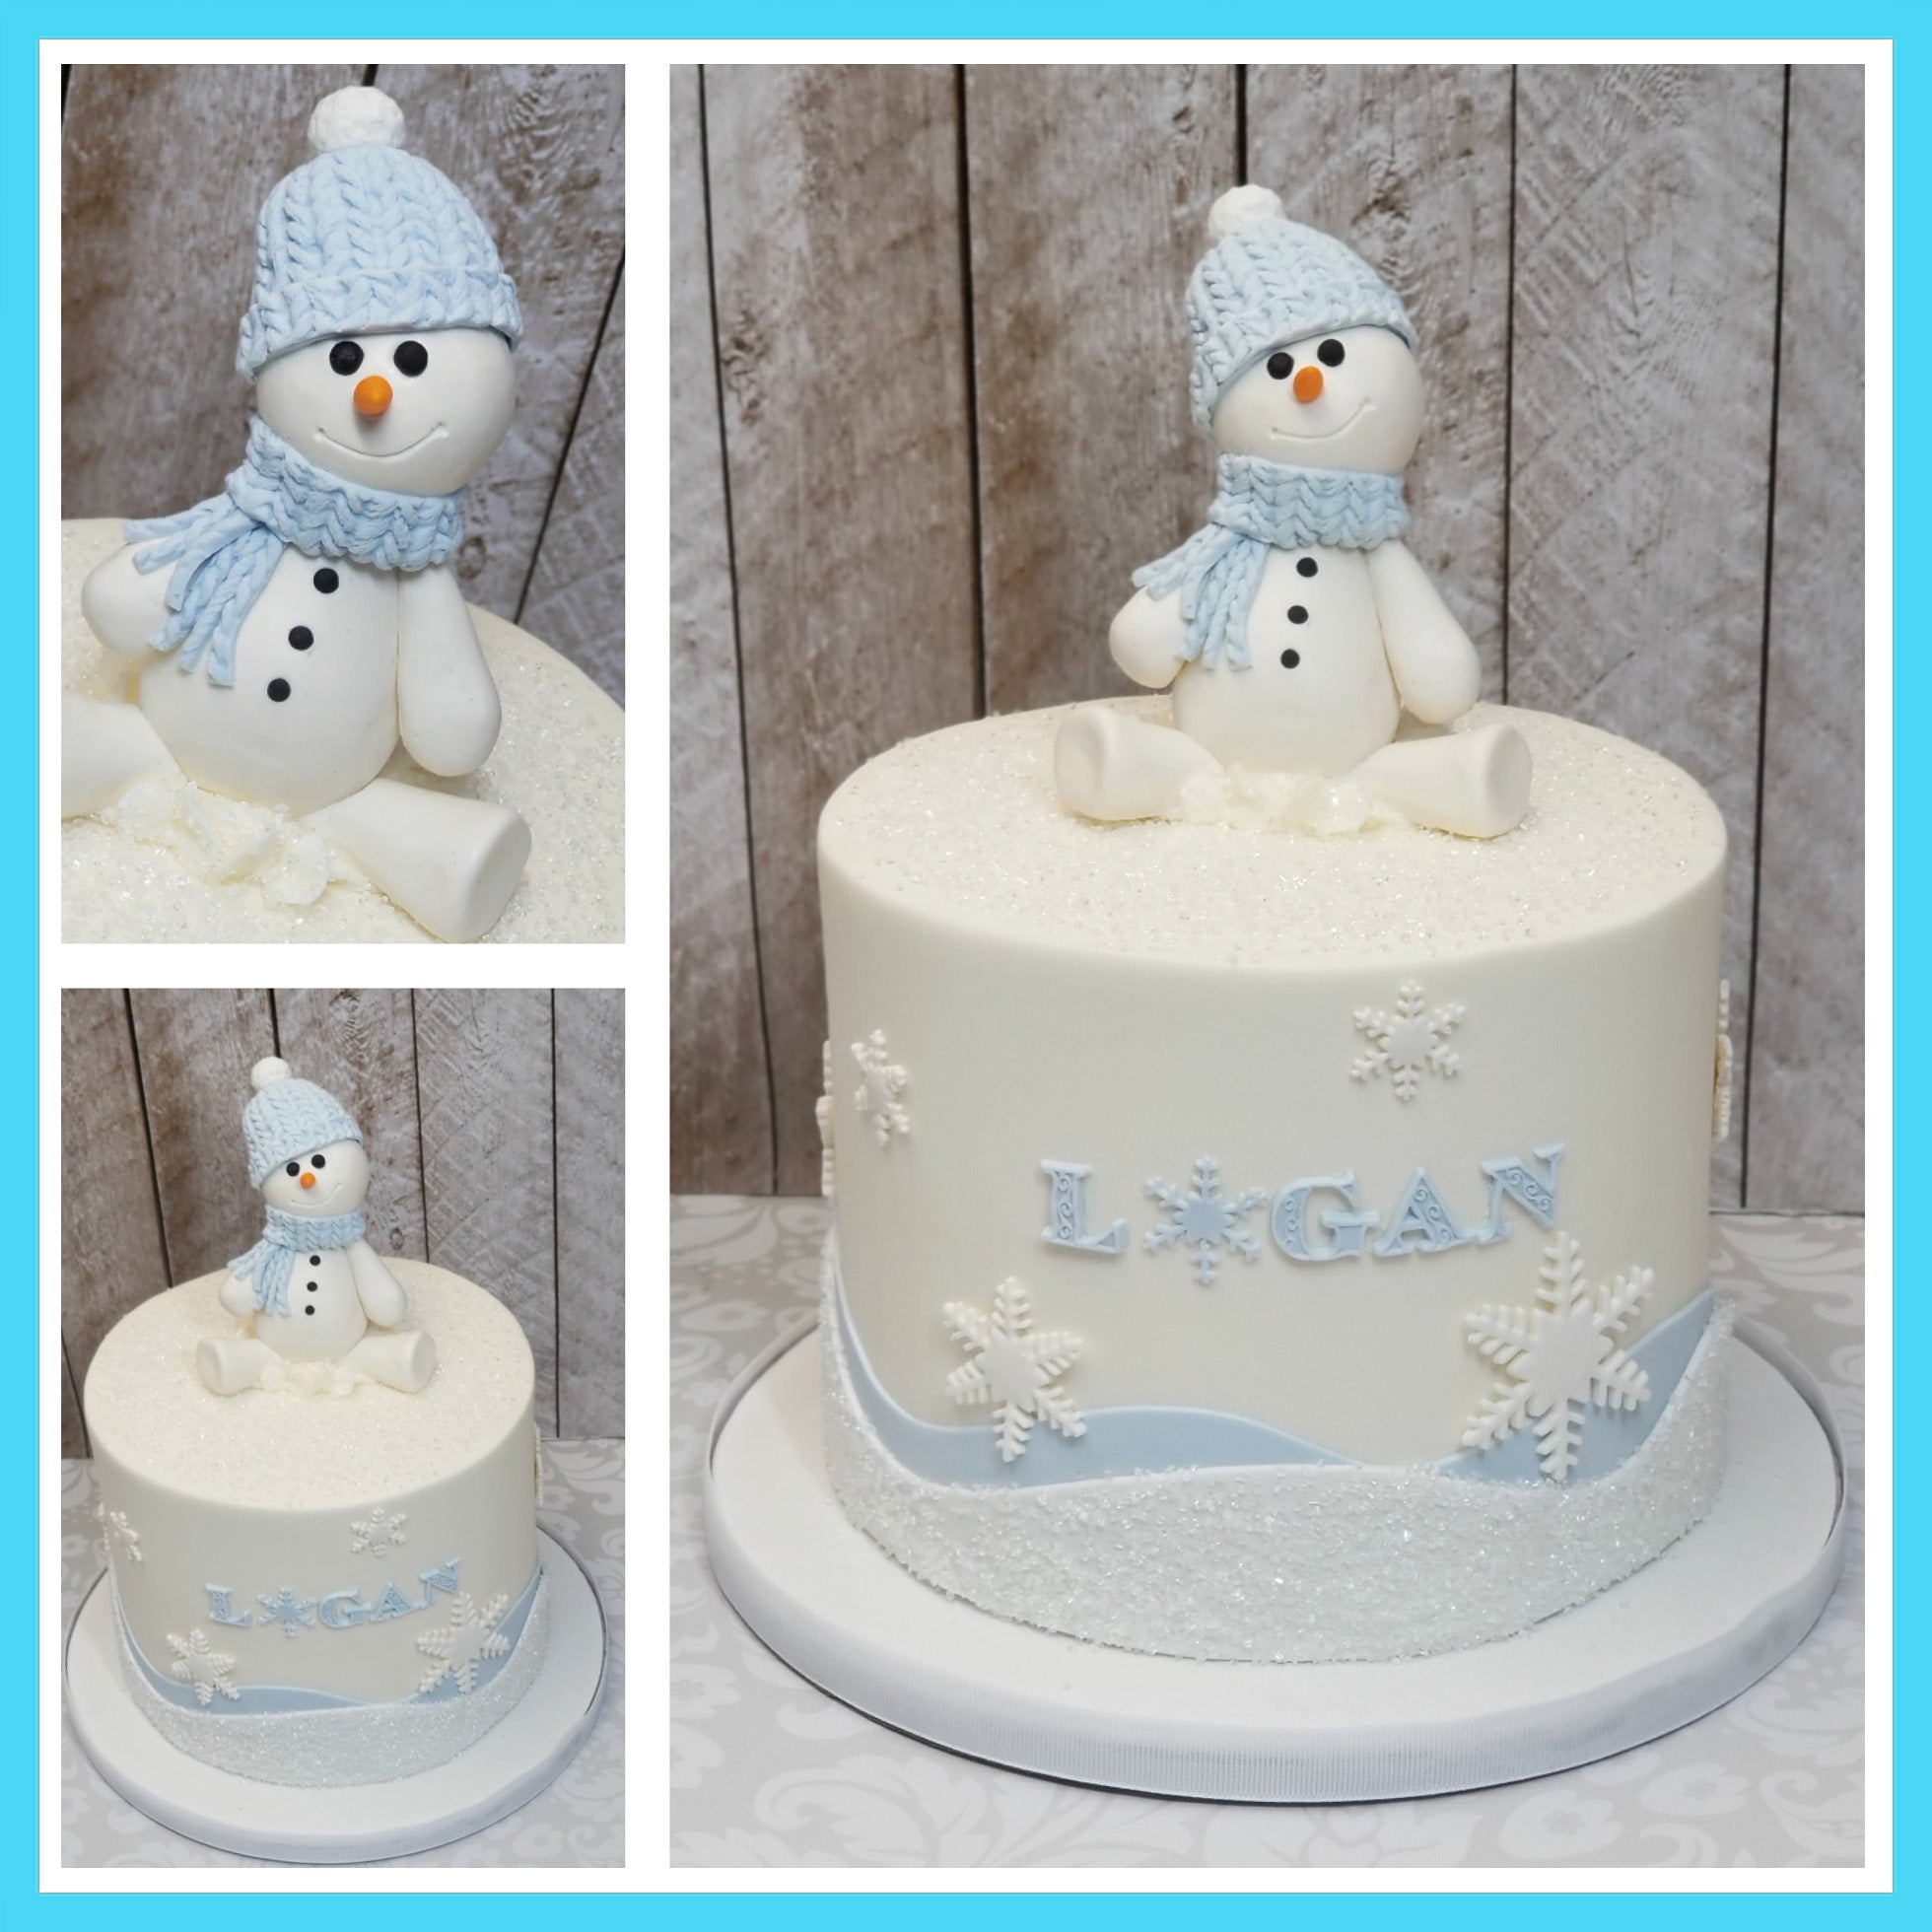 Super Logans Snowman 1St Birthday Cake Nj Best Cakes Blue Sheep Bake Shop Personalised Birthday Cards Petedlily Jamesorg